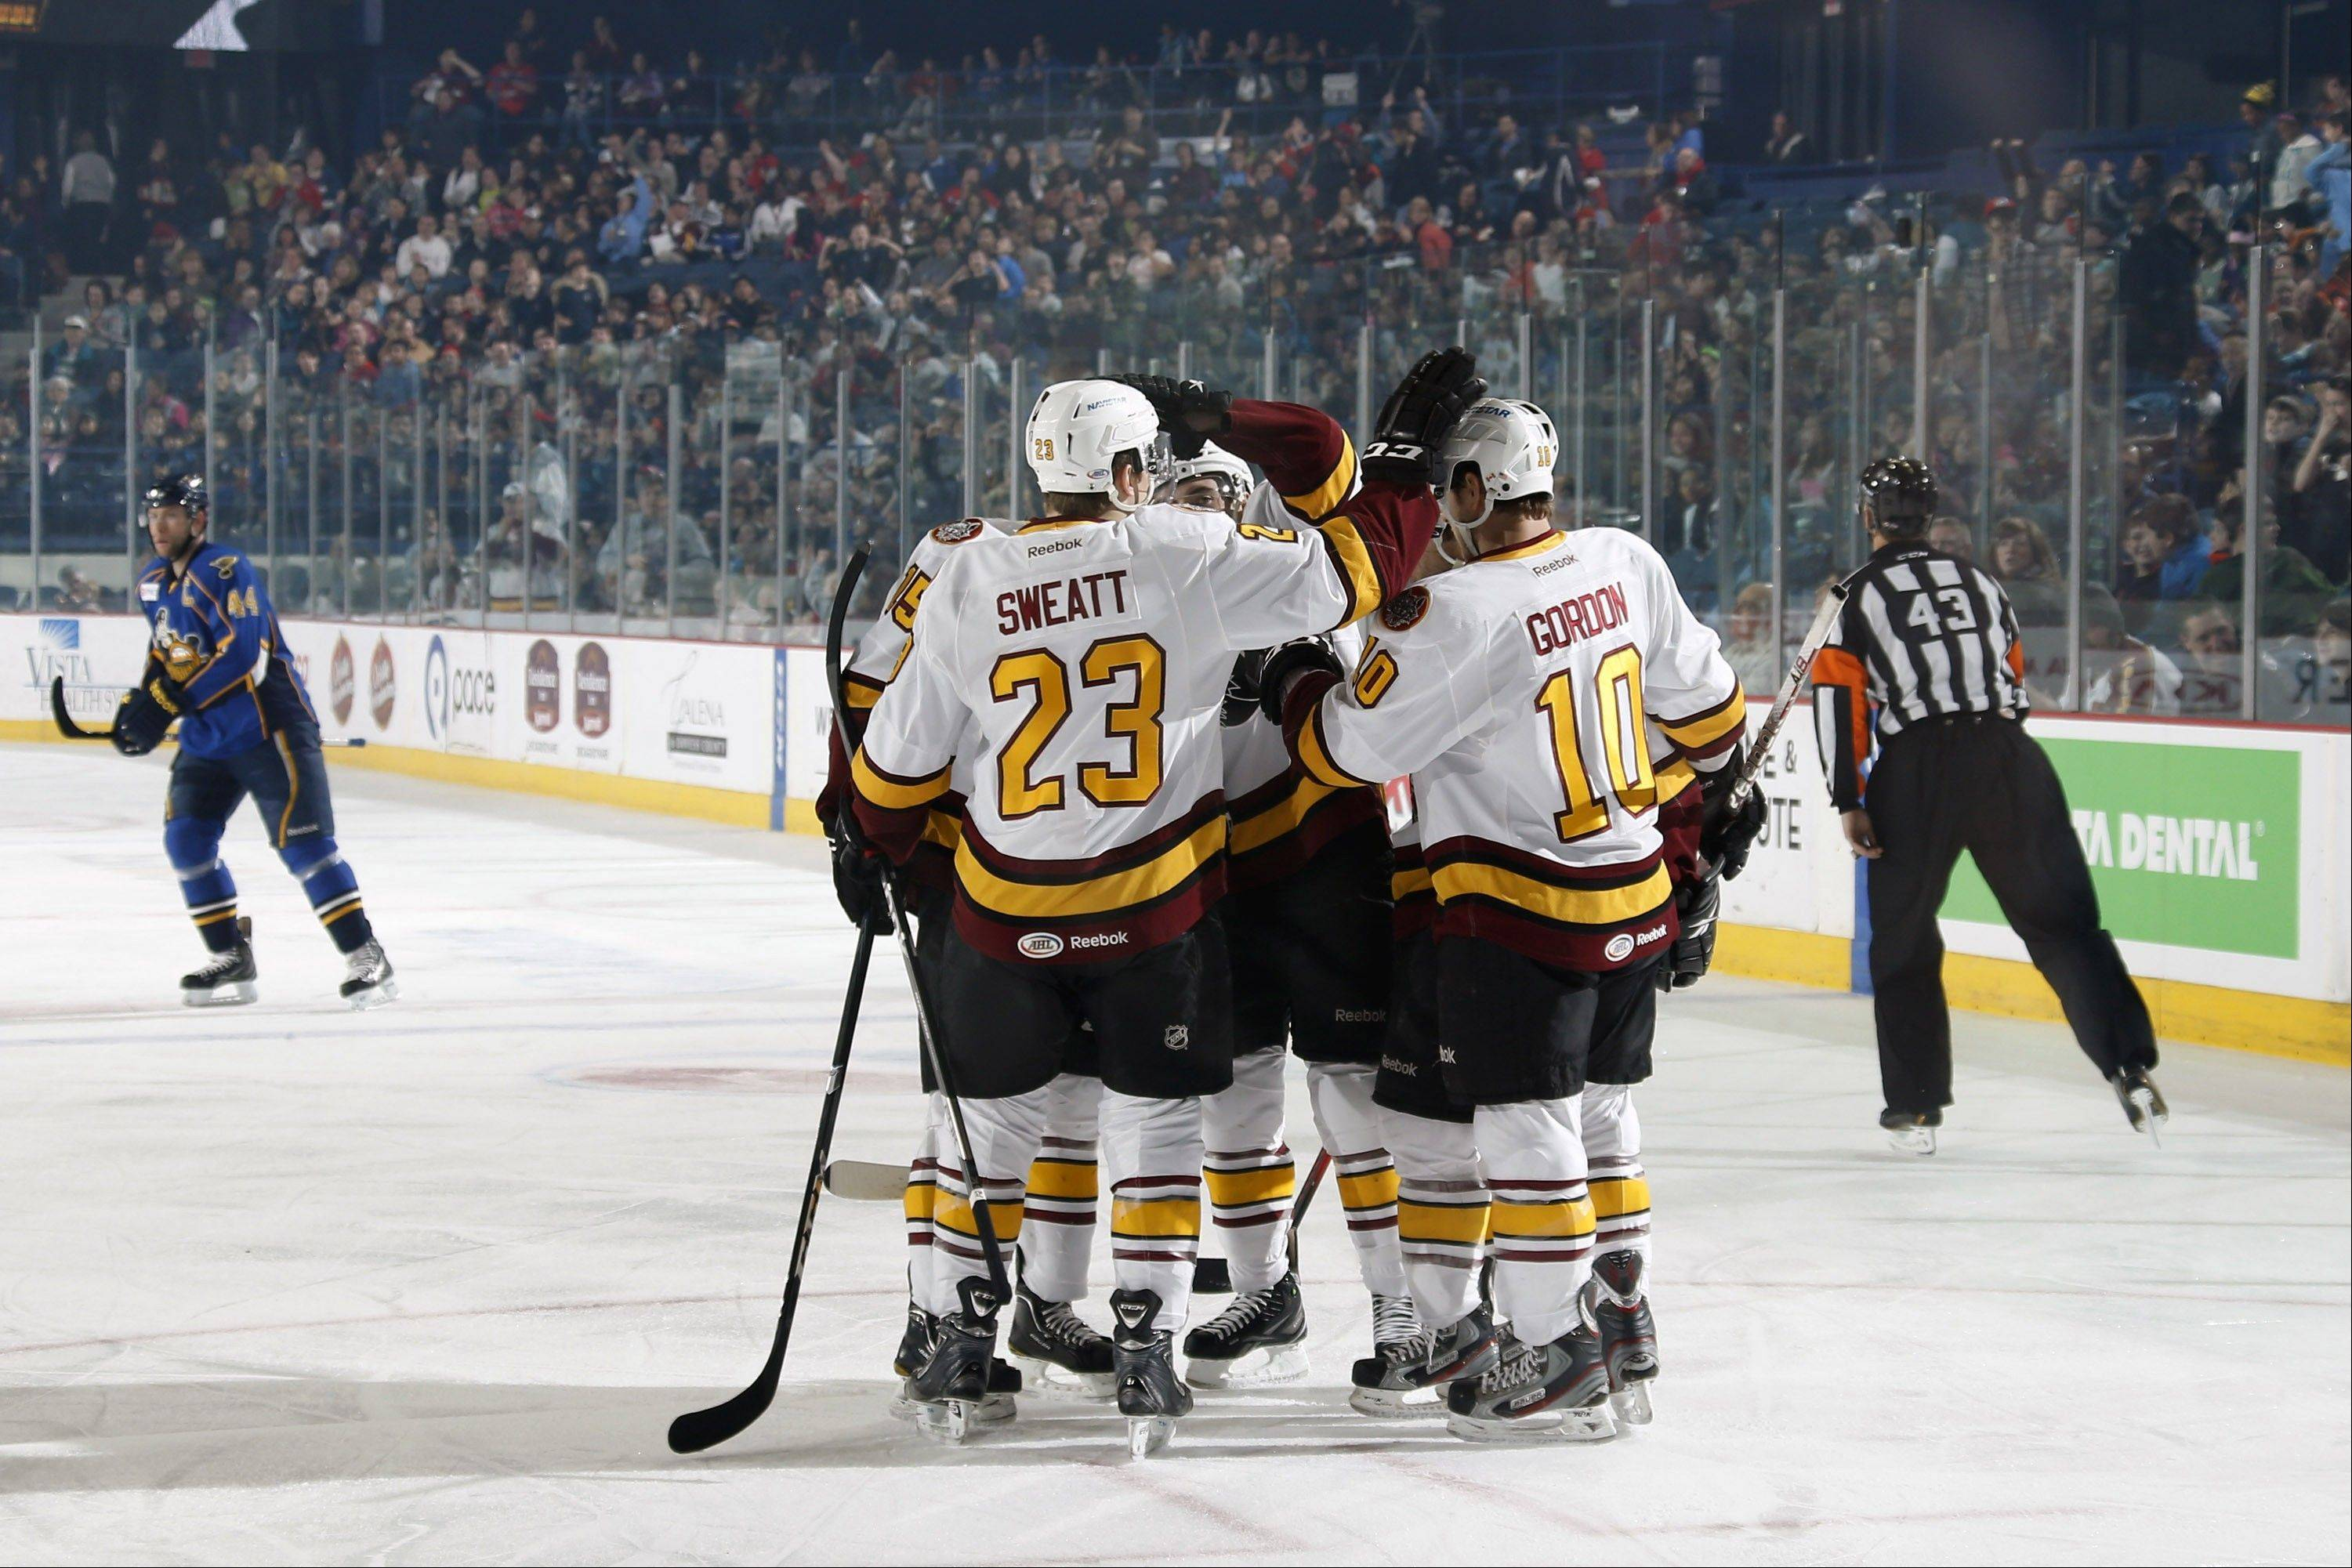 The Wolves celebrate a first period goal Tuesday against the Peoria Rivermen at Allstate Arena. The Wolves pulled out a 4-3 OT win.